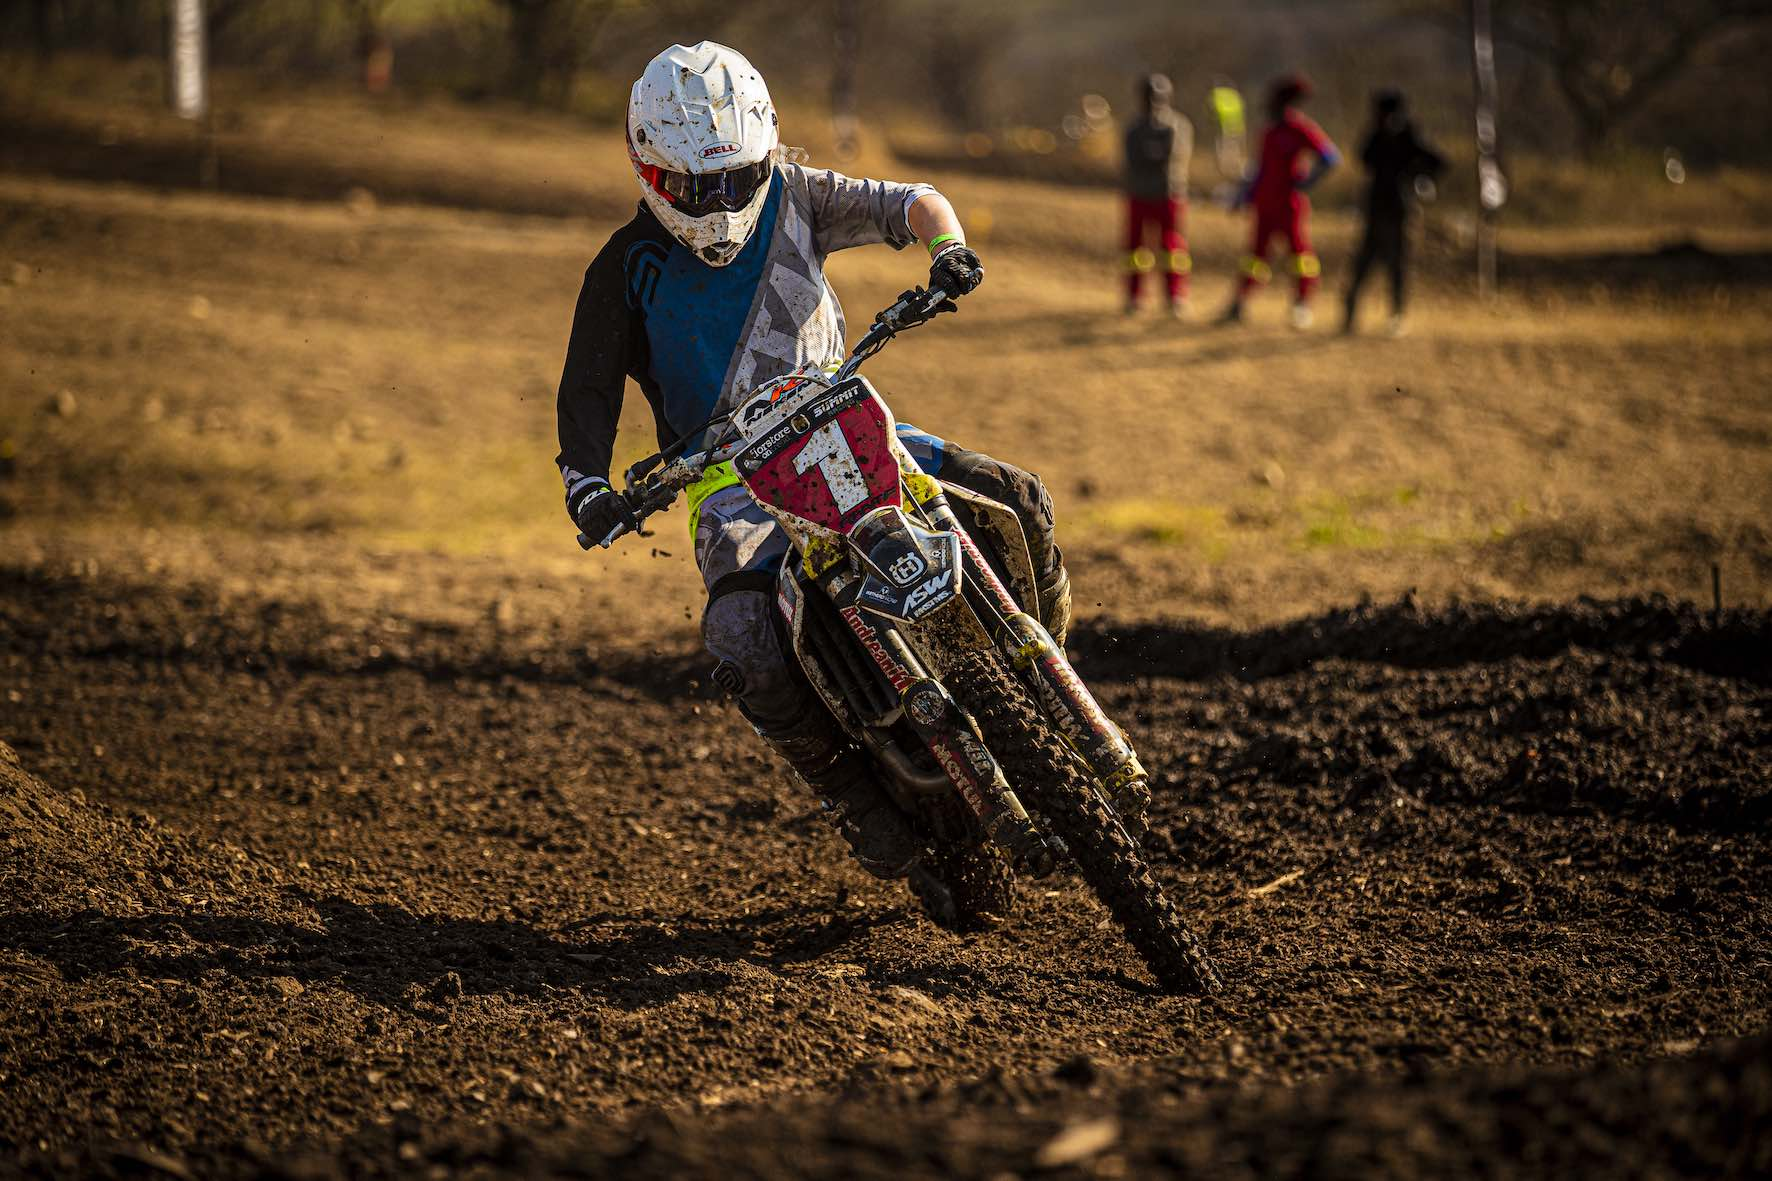 Kayla Raaff racing in the 2019 South African National Motocross Championship in Pietermaritzburg